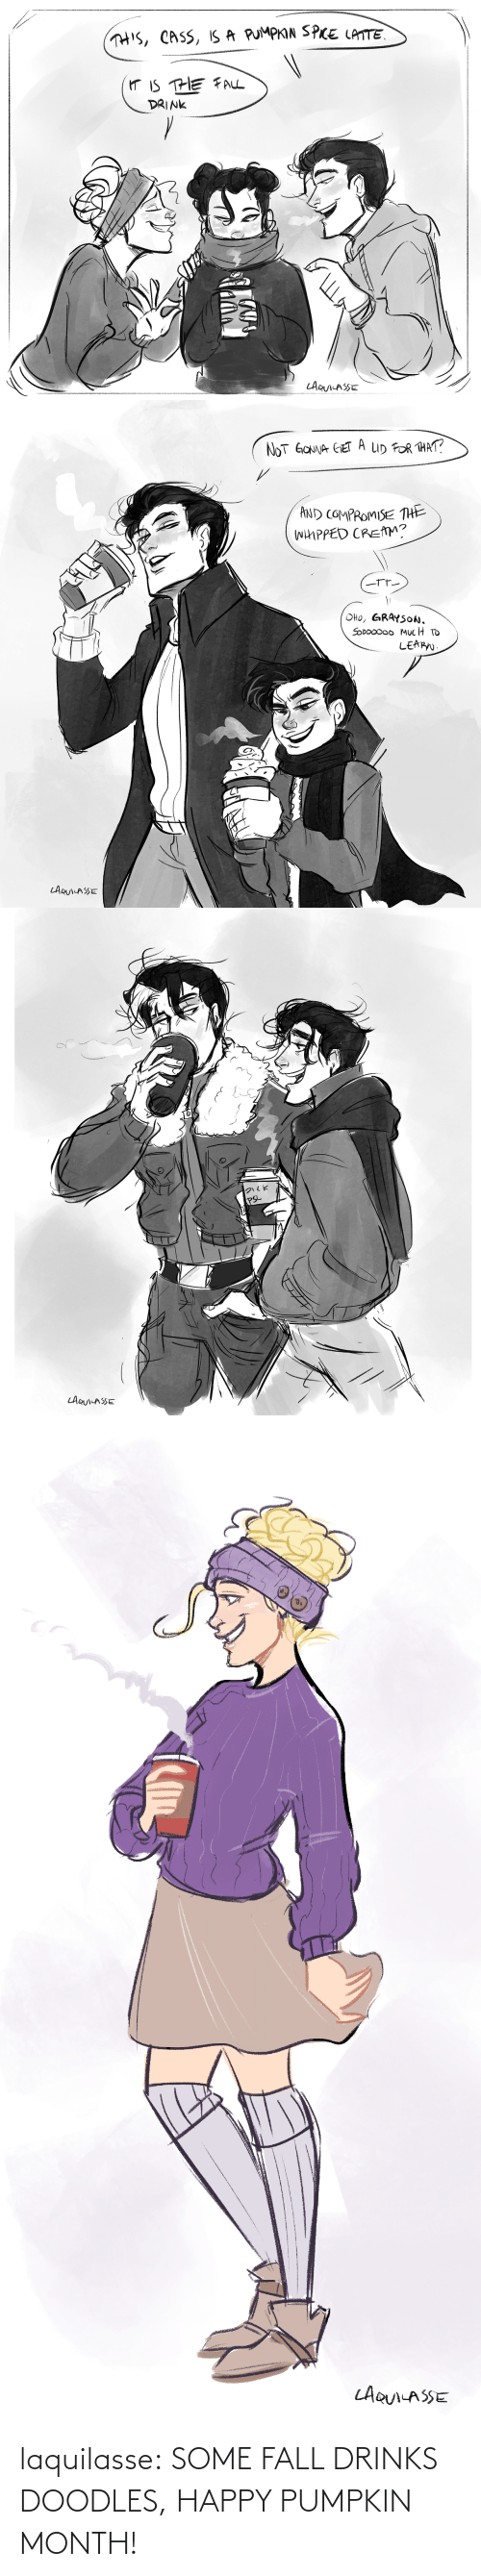 Happy: laquilasse:  SOME FALL DRINKS DOODLES, HAPPY PUMPKIN MONTH!